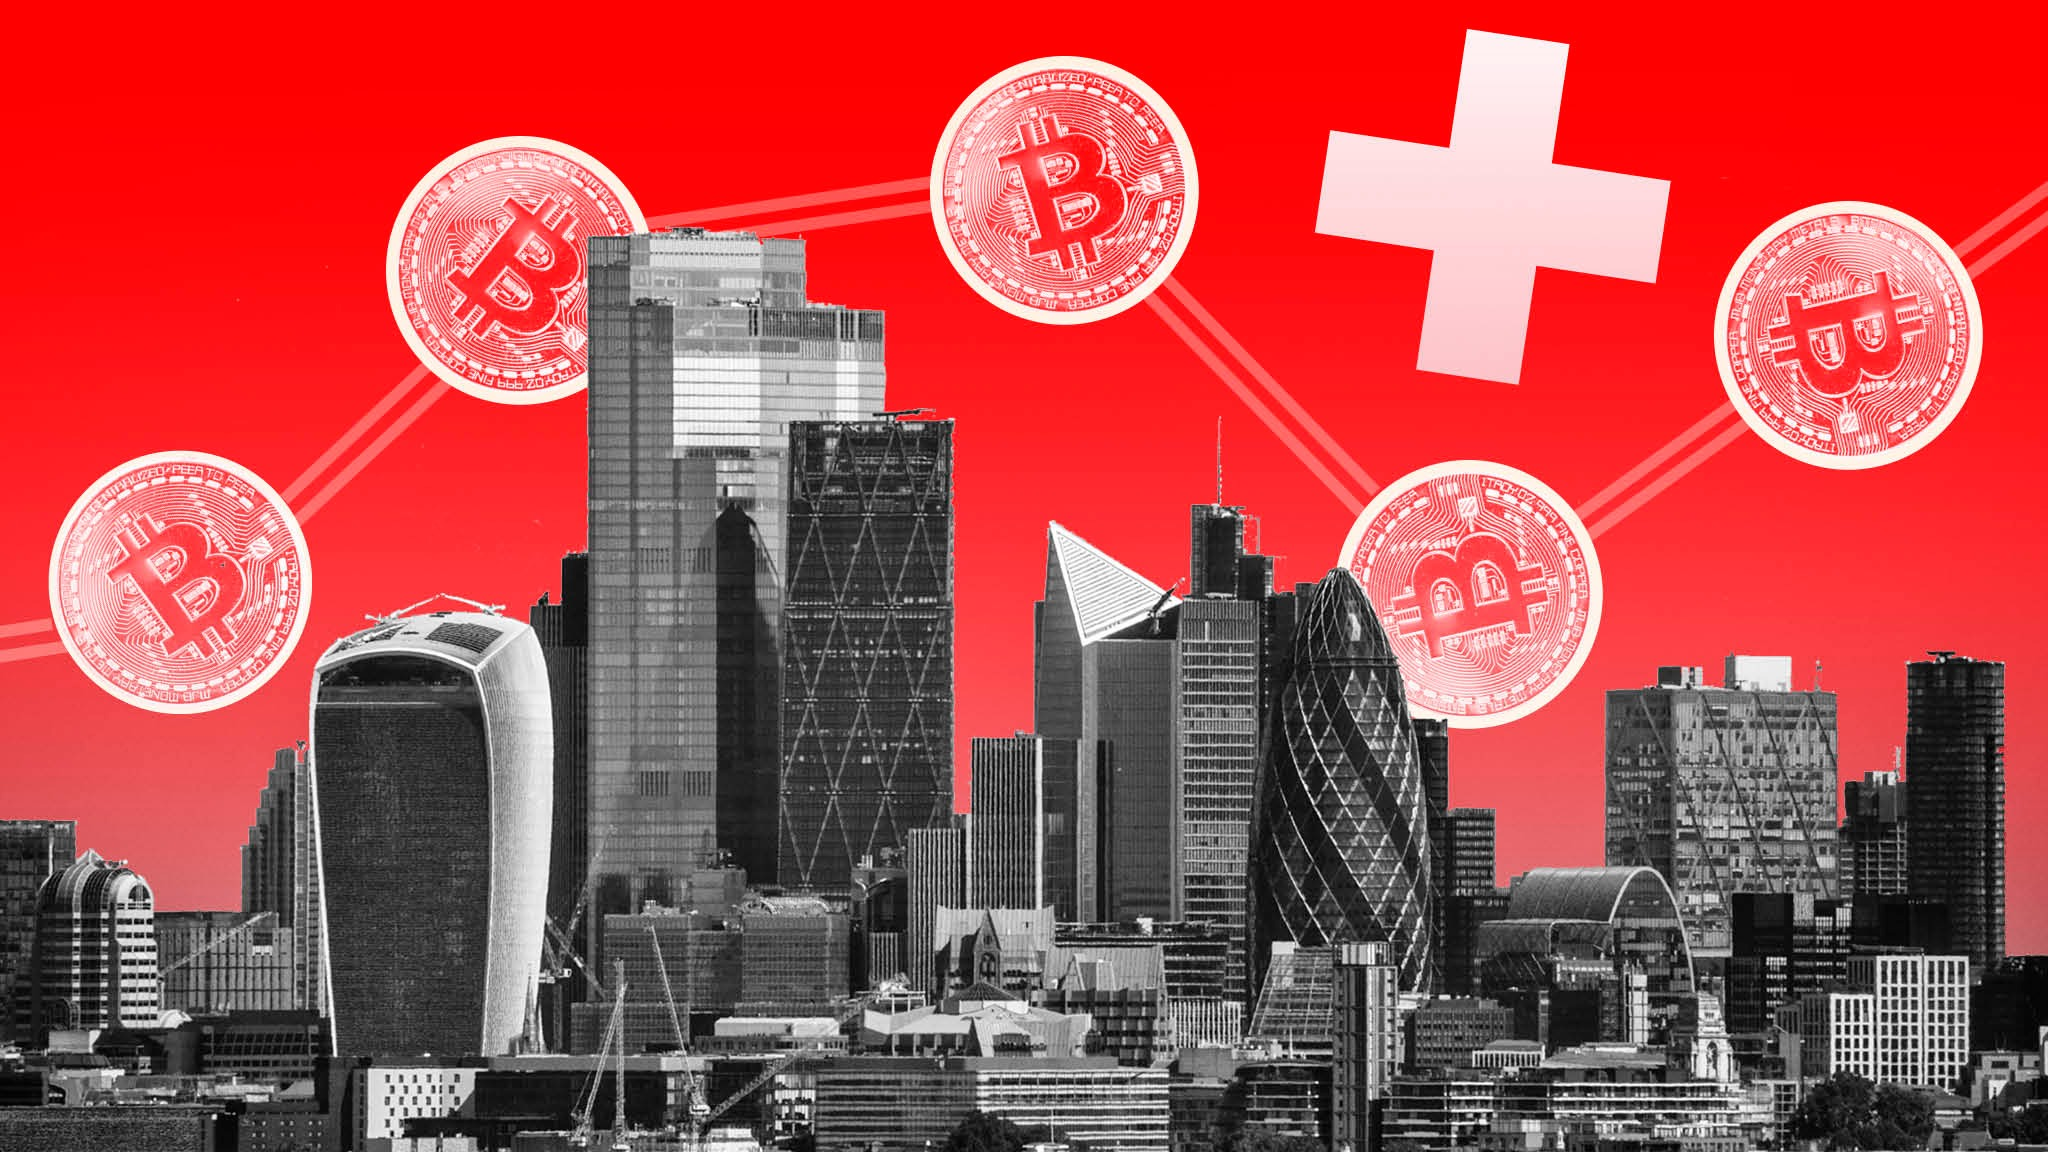 The Swiss consultancy organization proposes the idea of adding Bitcoin to the list of national reserve assets